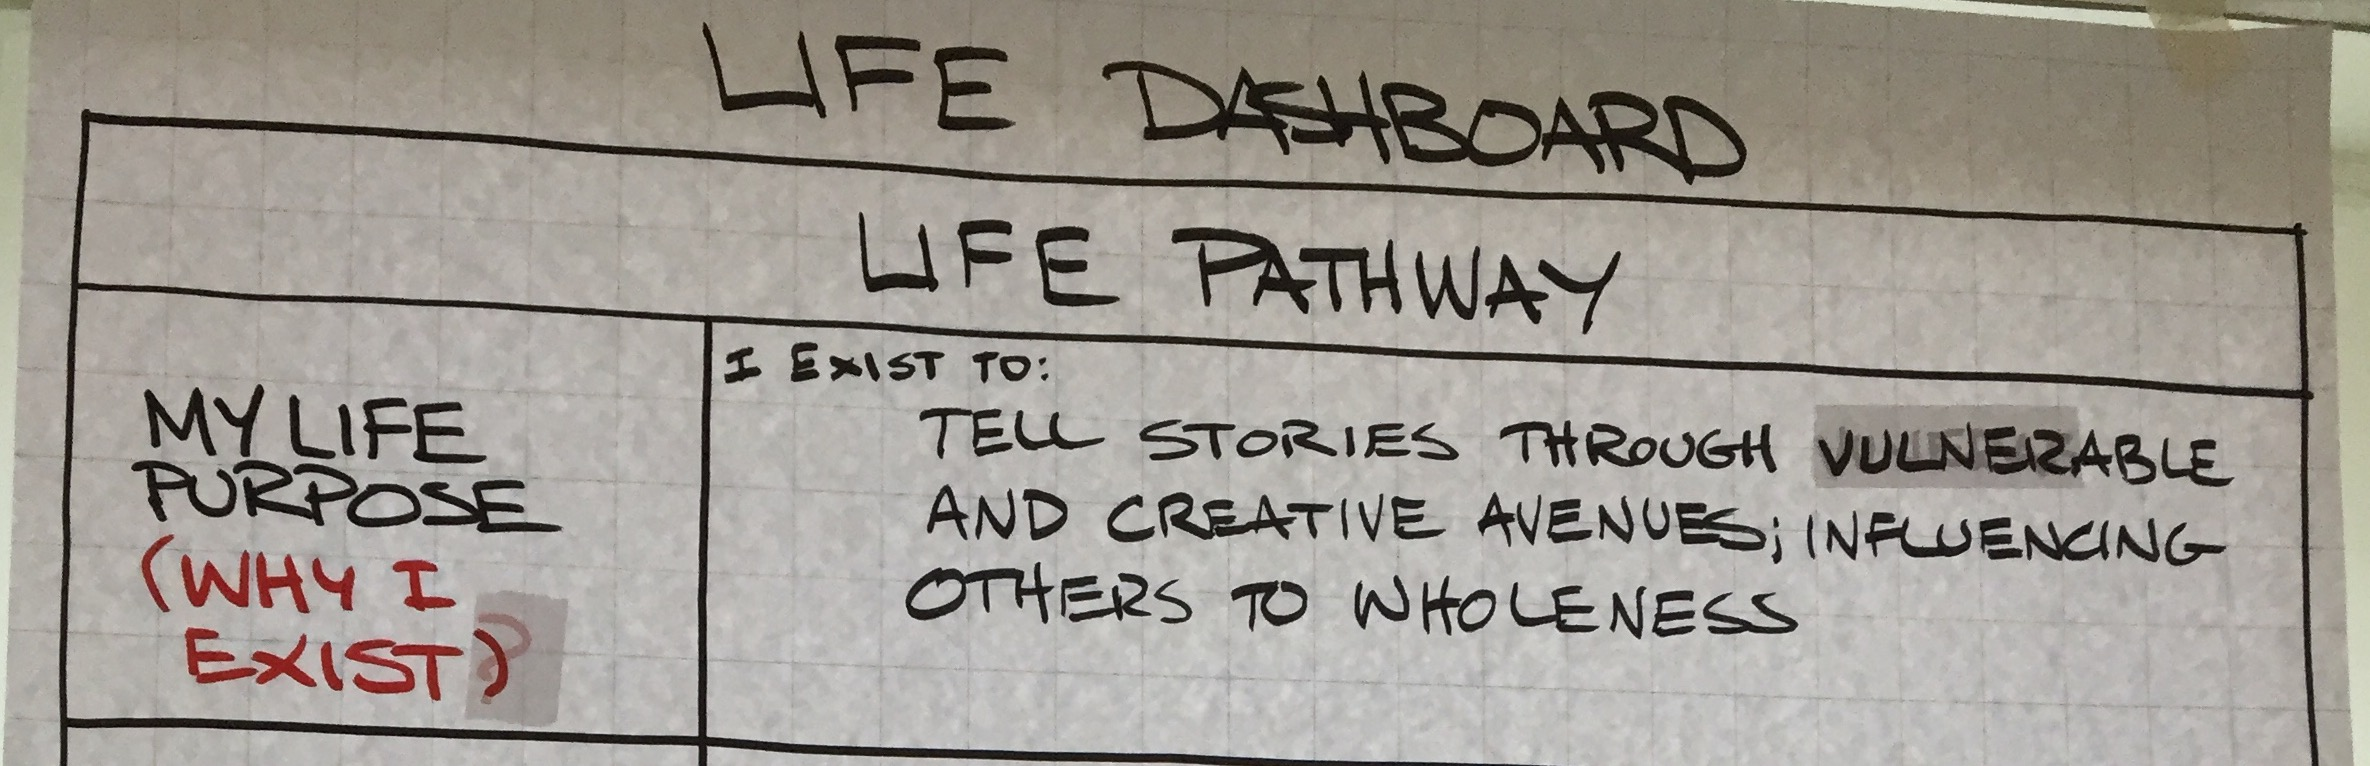 """One of my greatest take-aways after completing a two day Paterson Life Plan last week. """"I exist to..."""""""